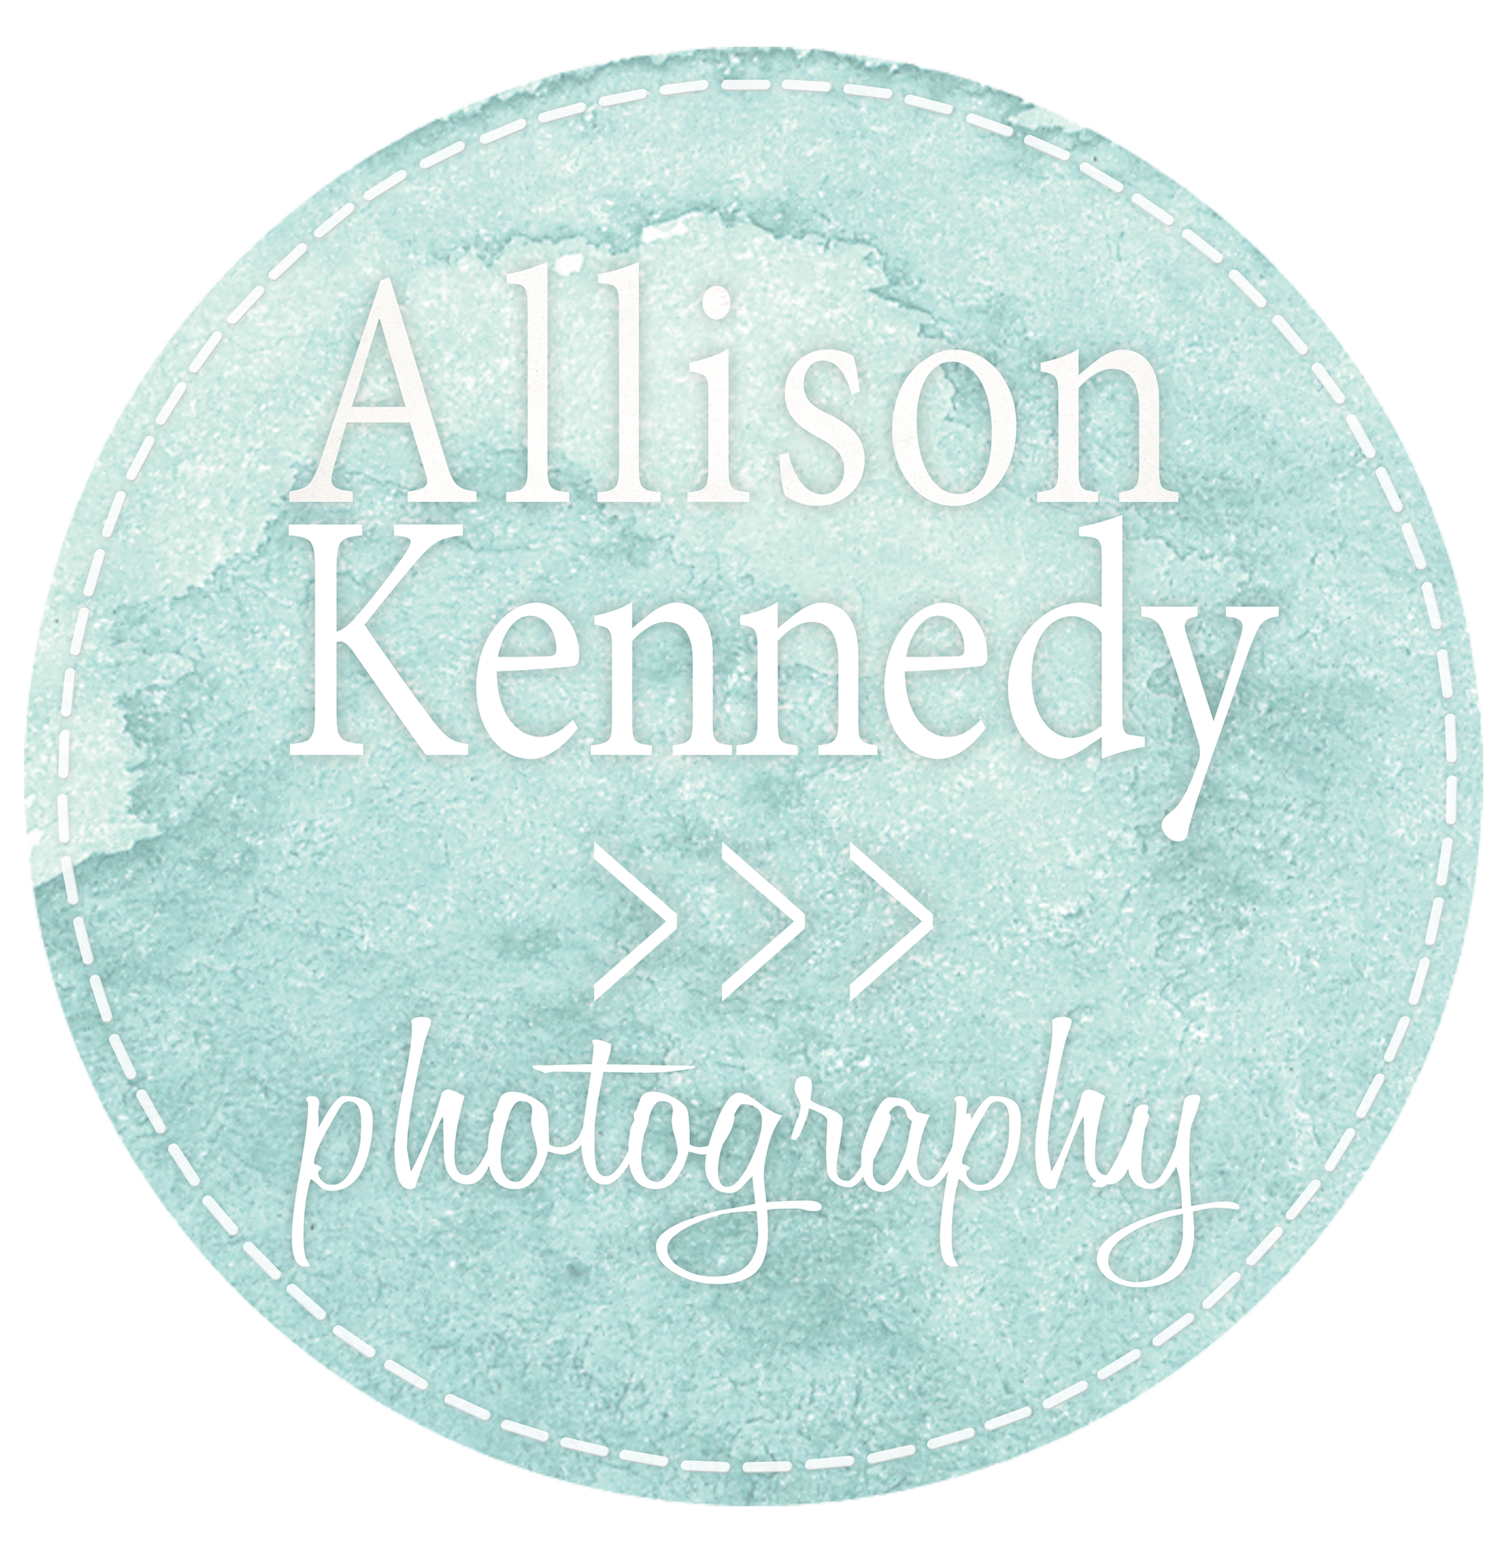 Allison Kennedy Photography